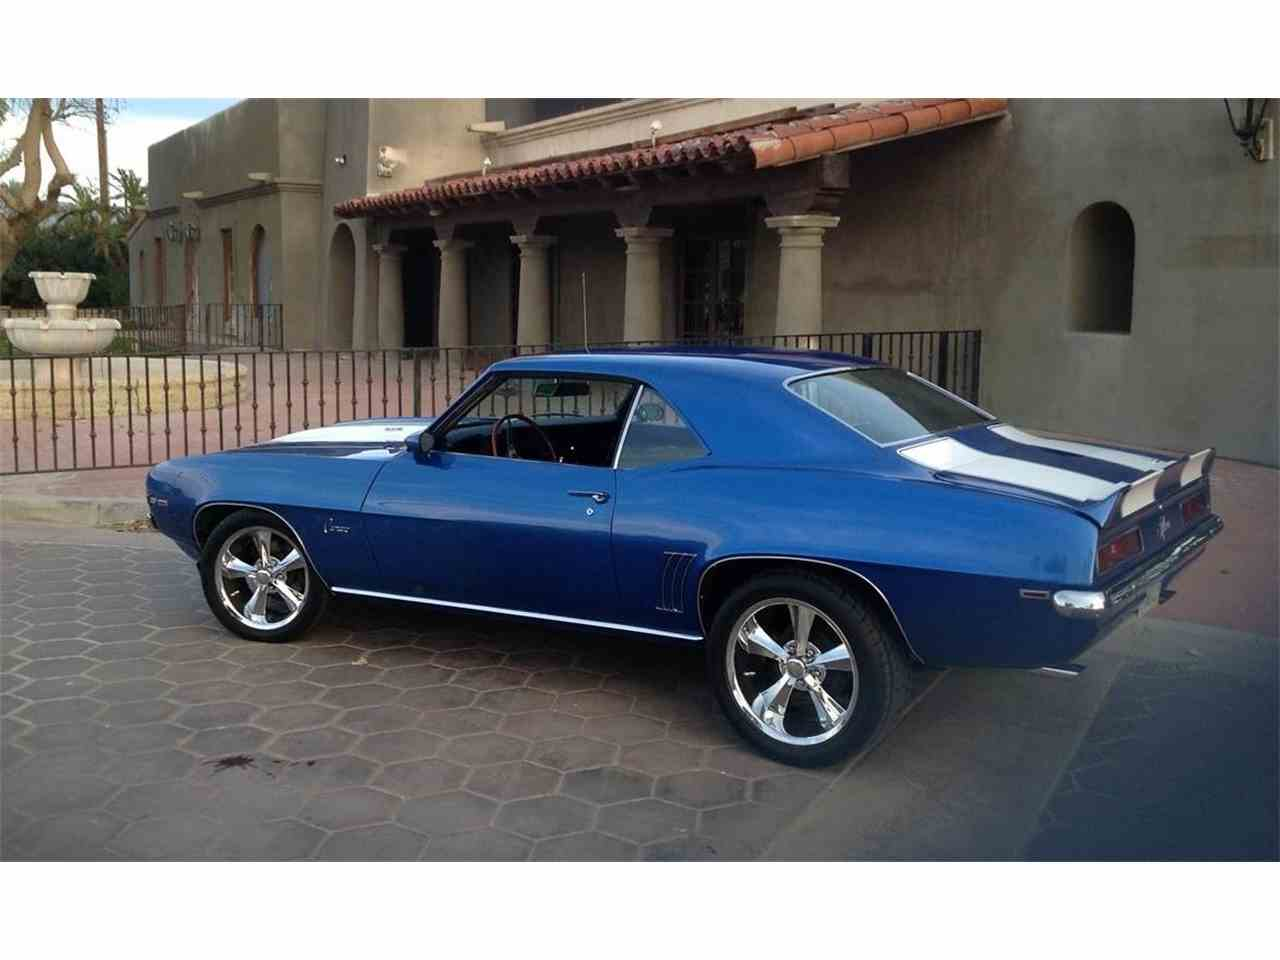 1969 Chevrolet Camaro Z28 For Sale Classiccars Com Cc 889924